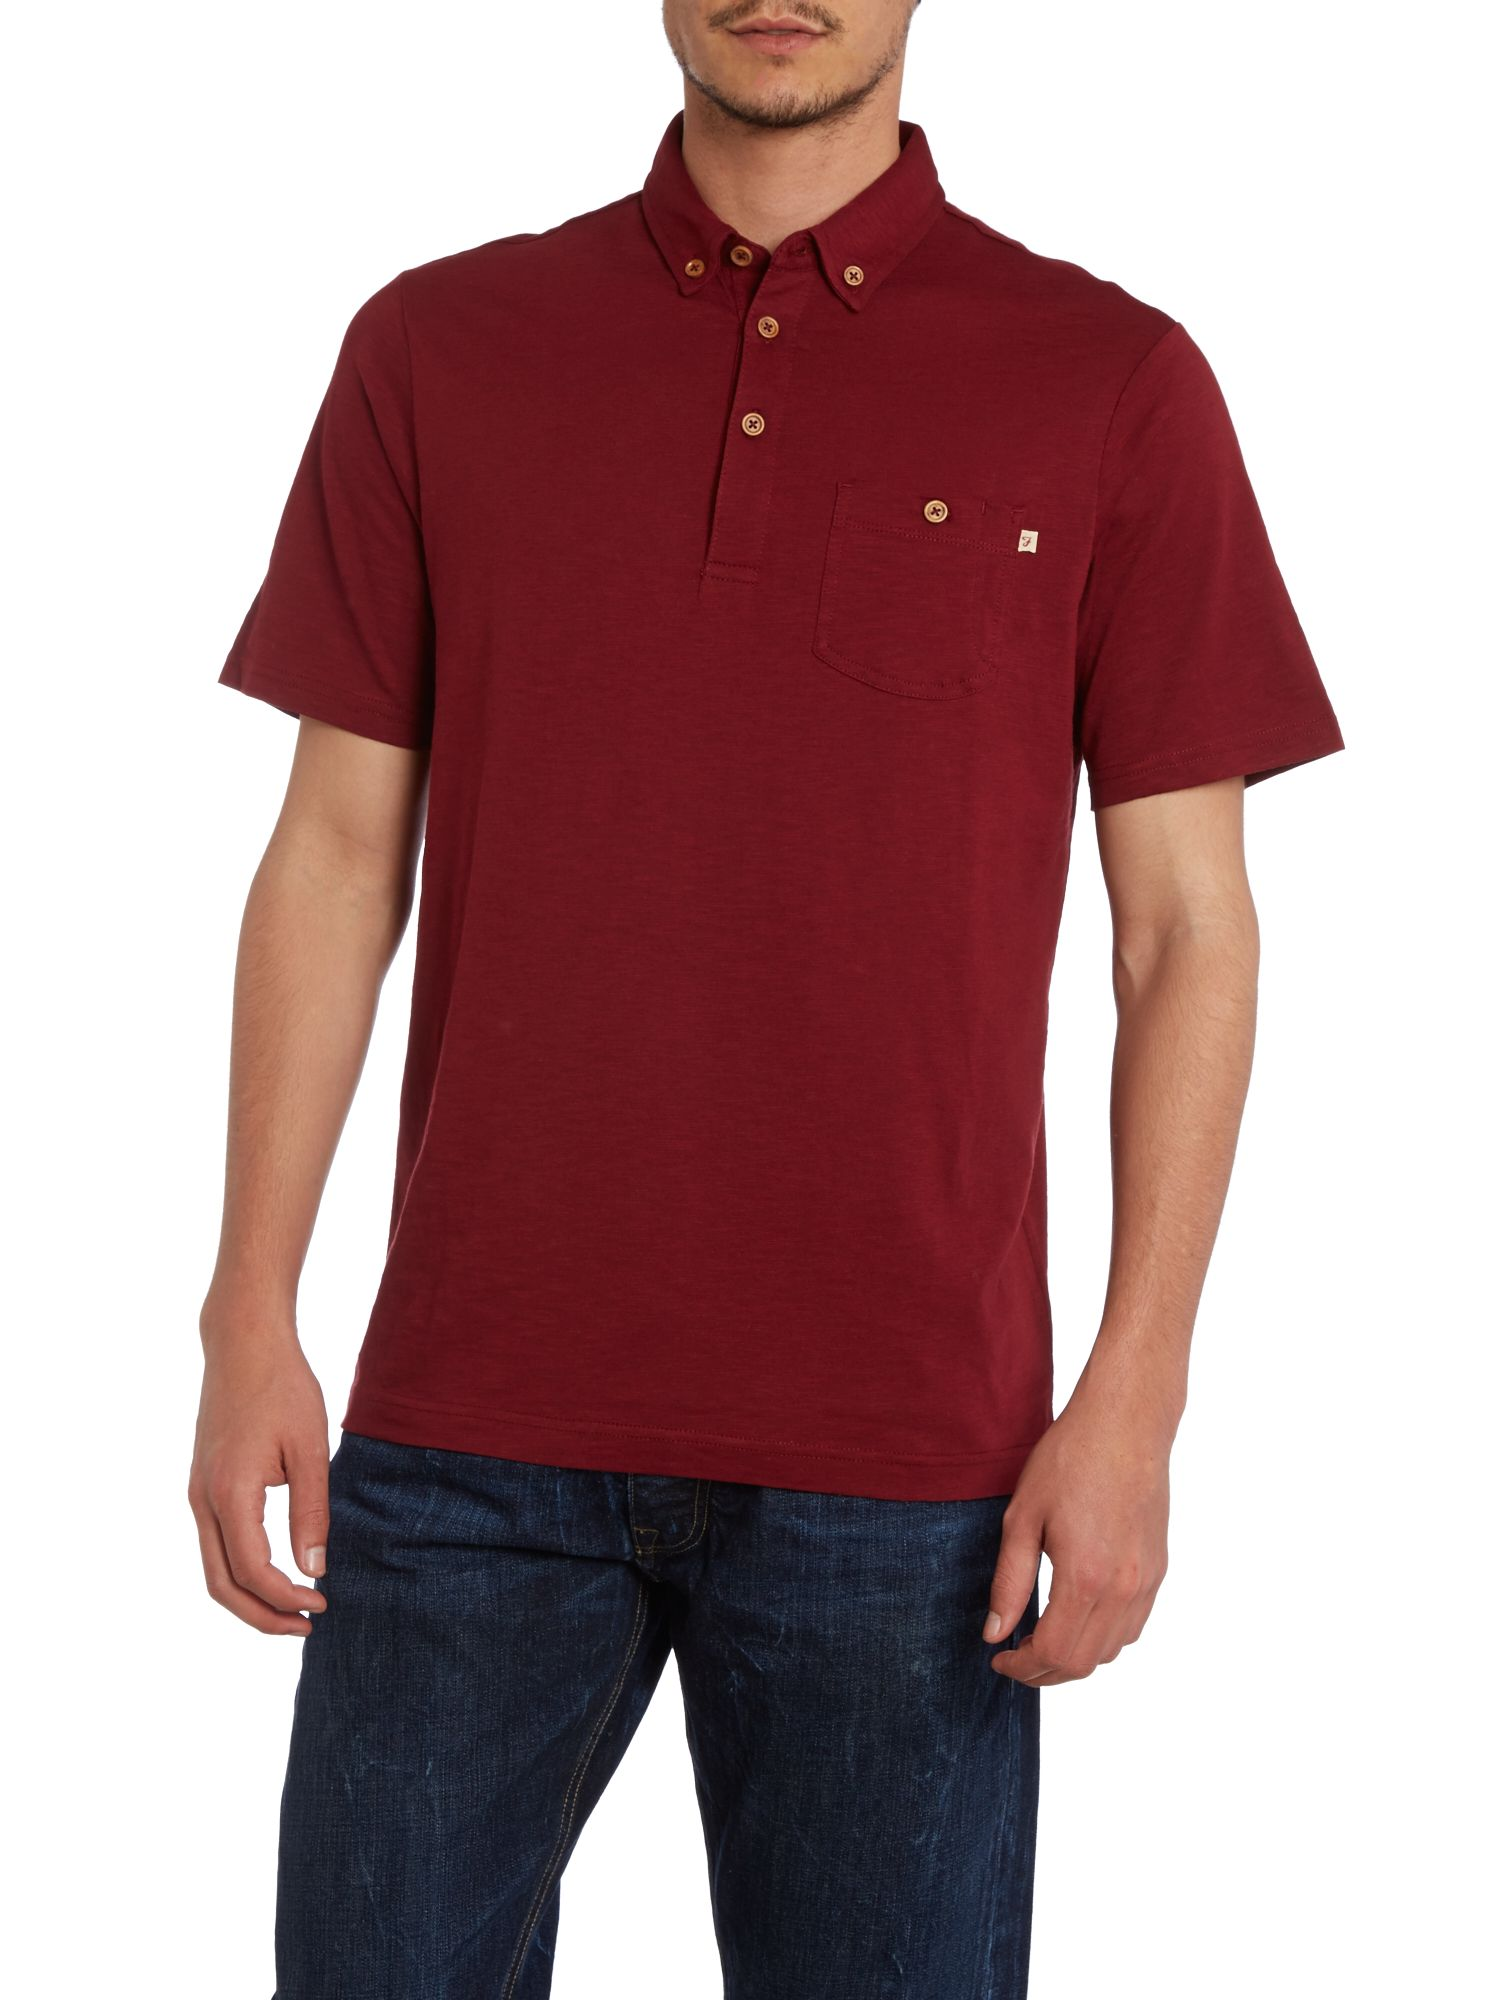 Stapleford button collar polo shirt